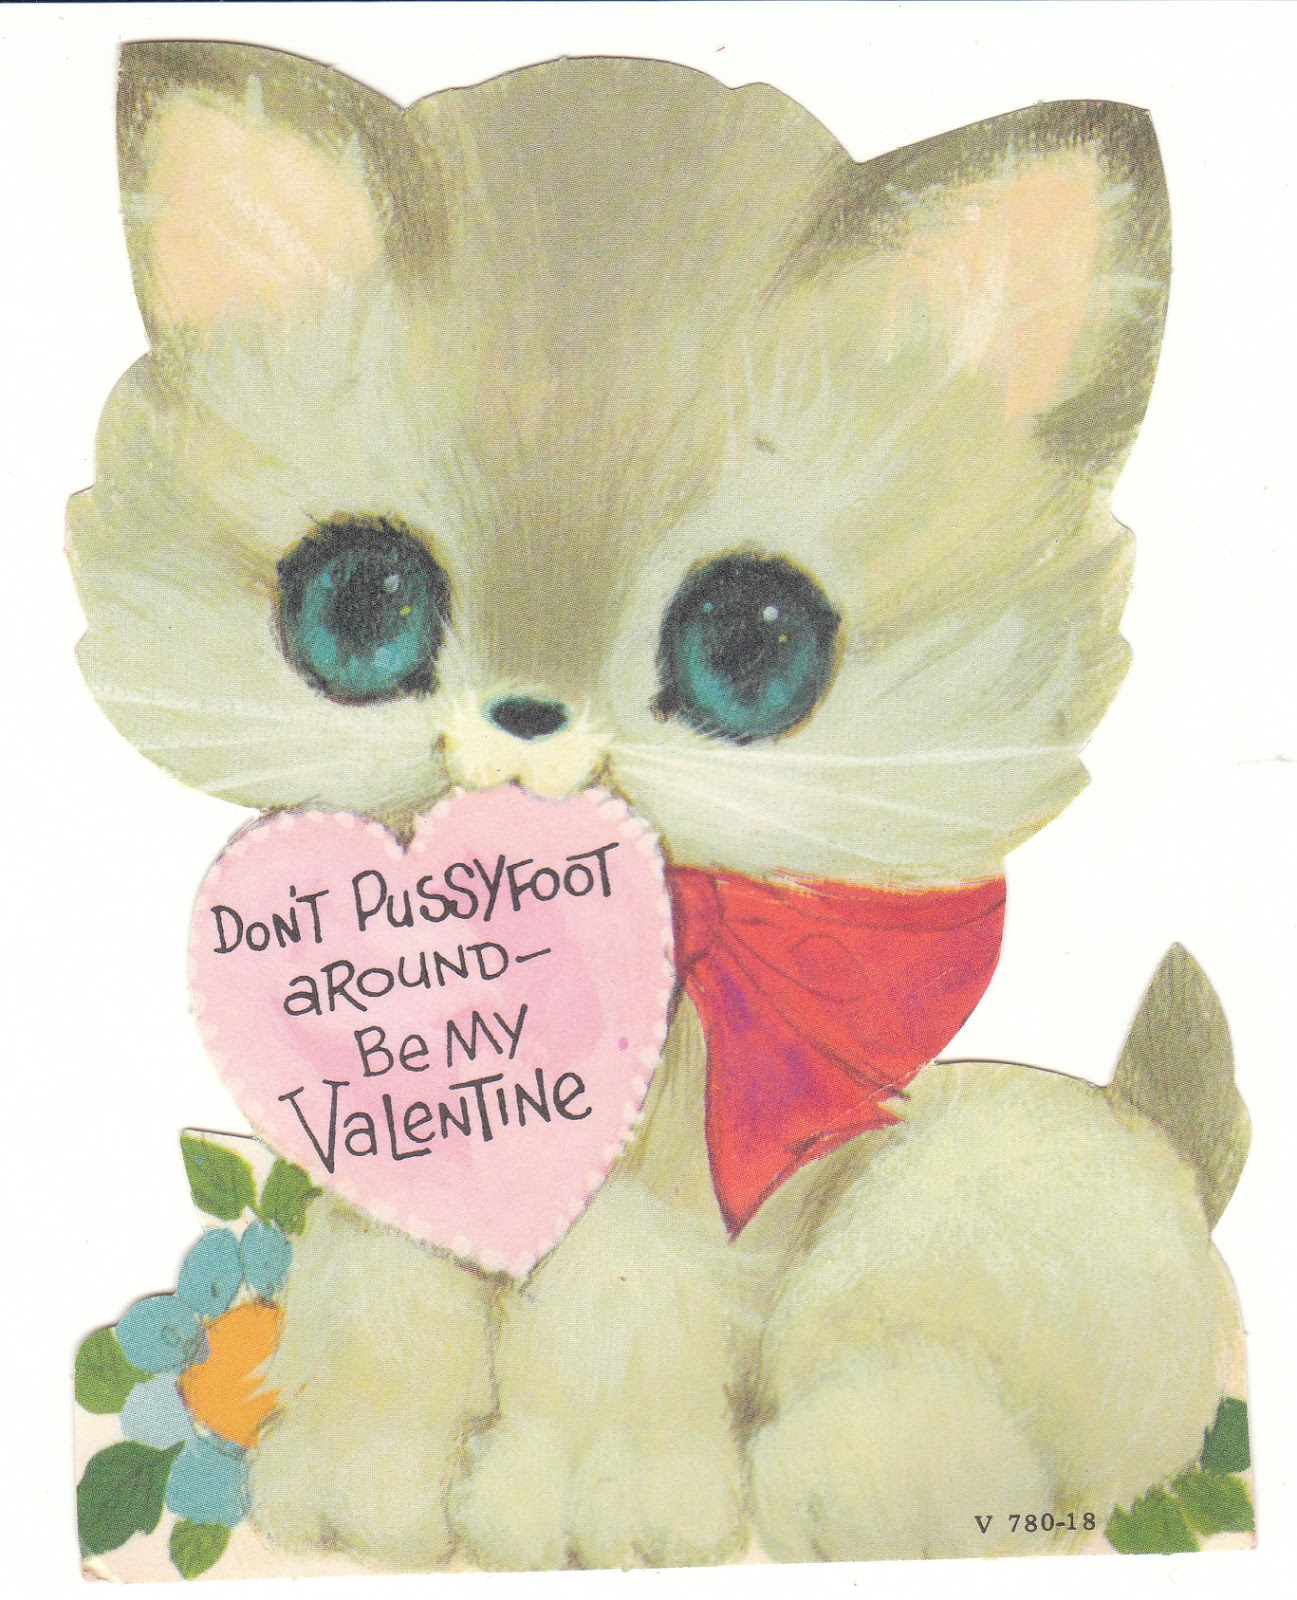 valentines-kitty-cats-debadotell-34